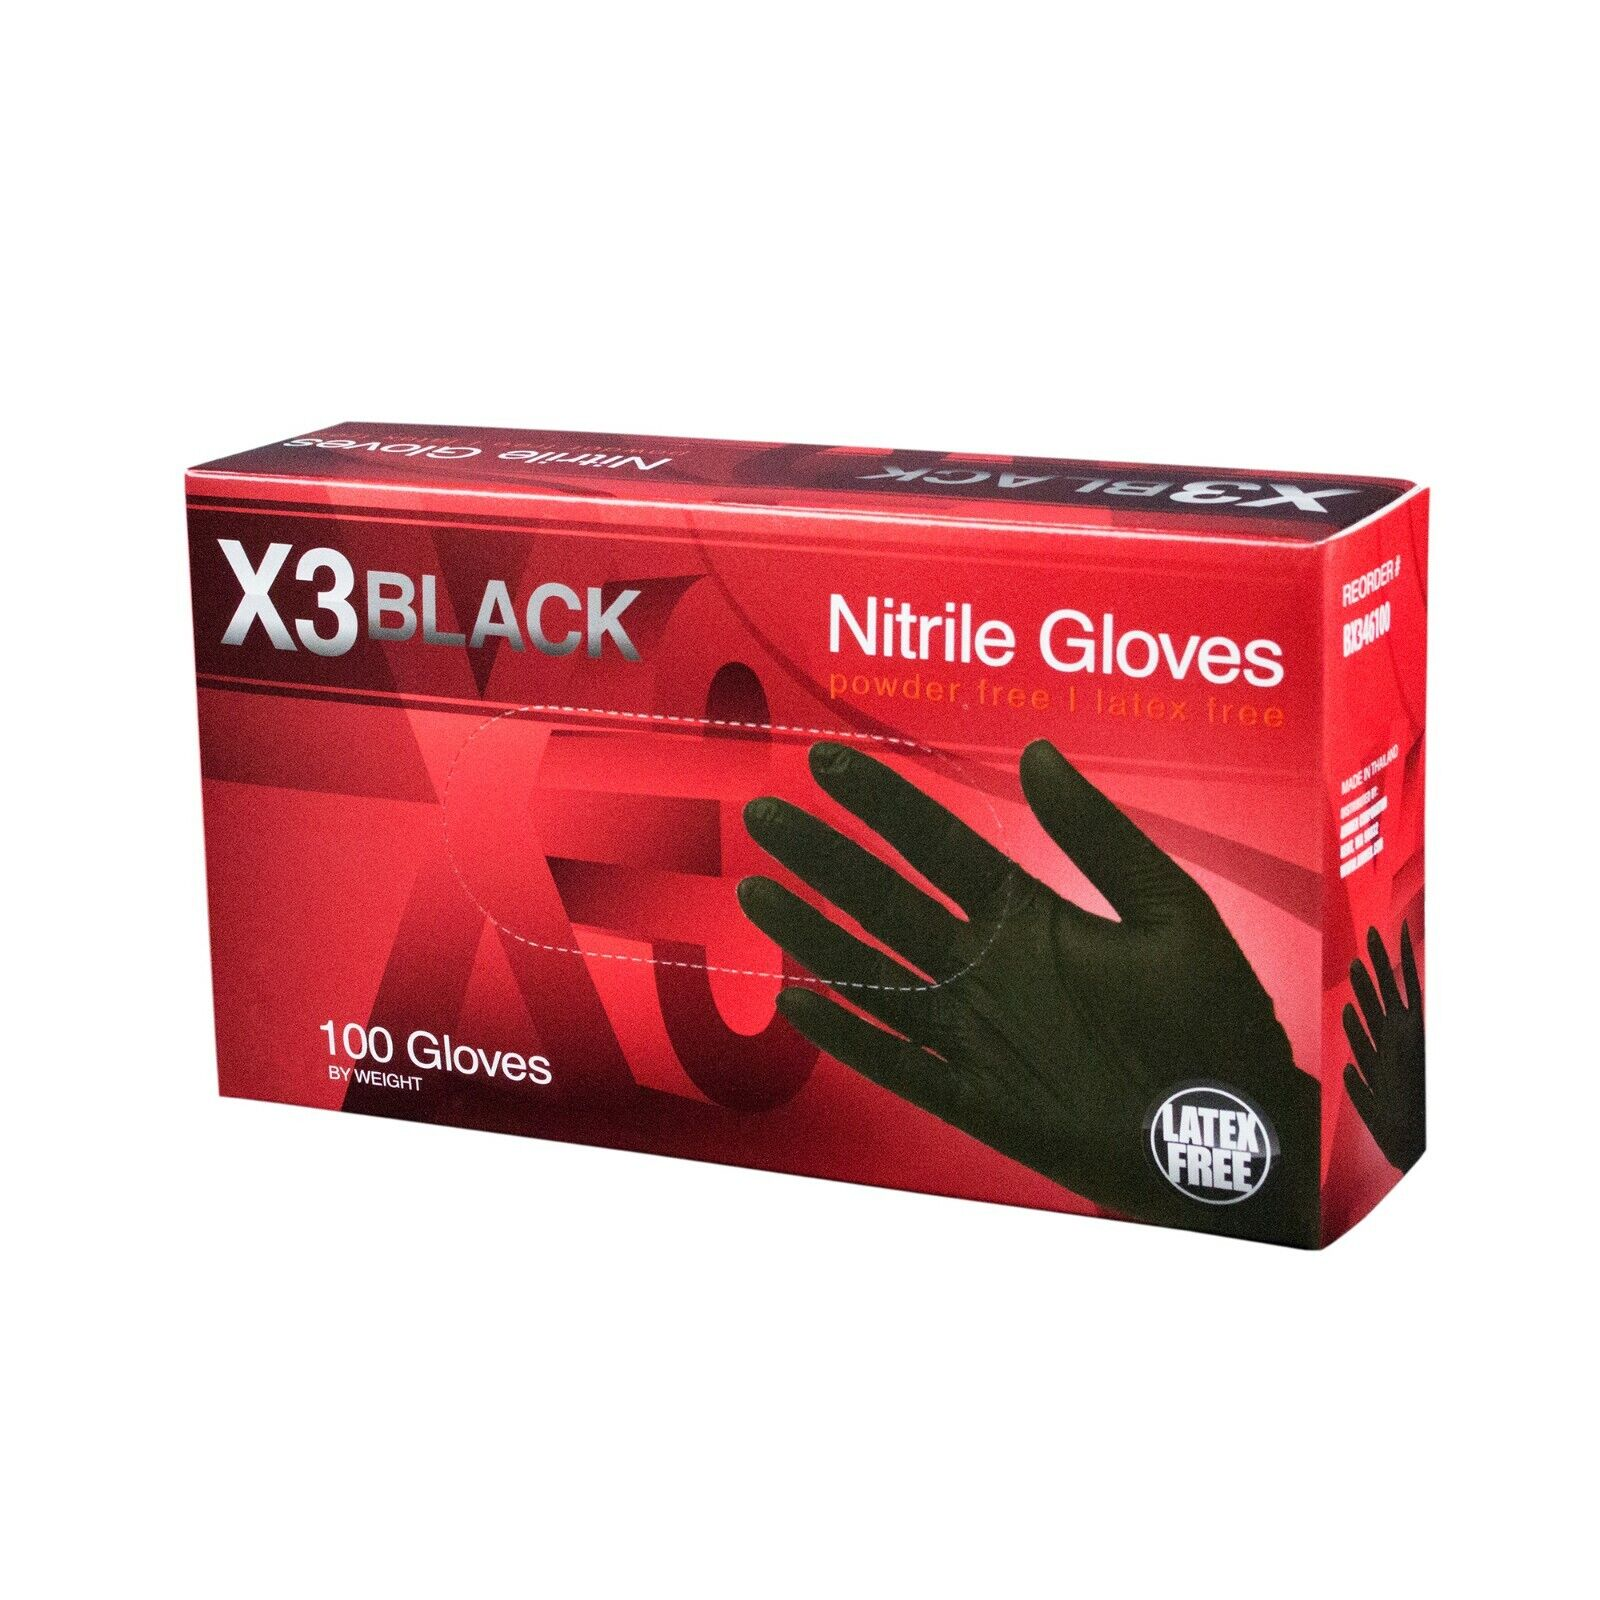 AMMEX BX3 Black Nitrile Industrial Latex Free Disposable Gloves (Box of 100) 100